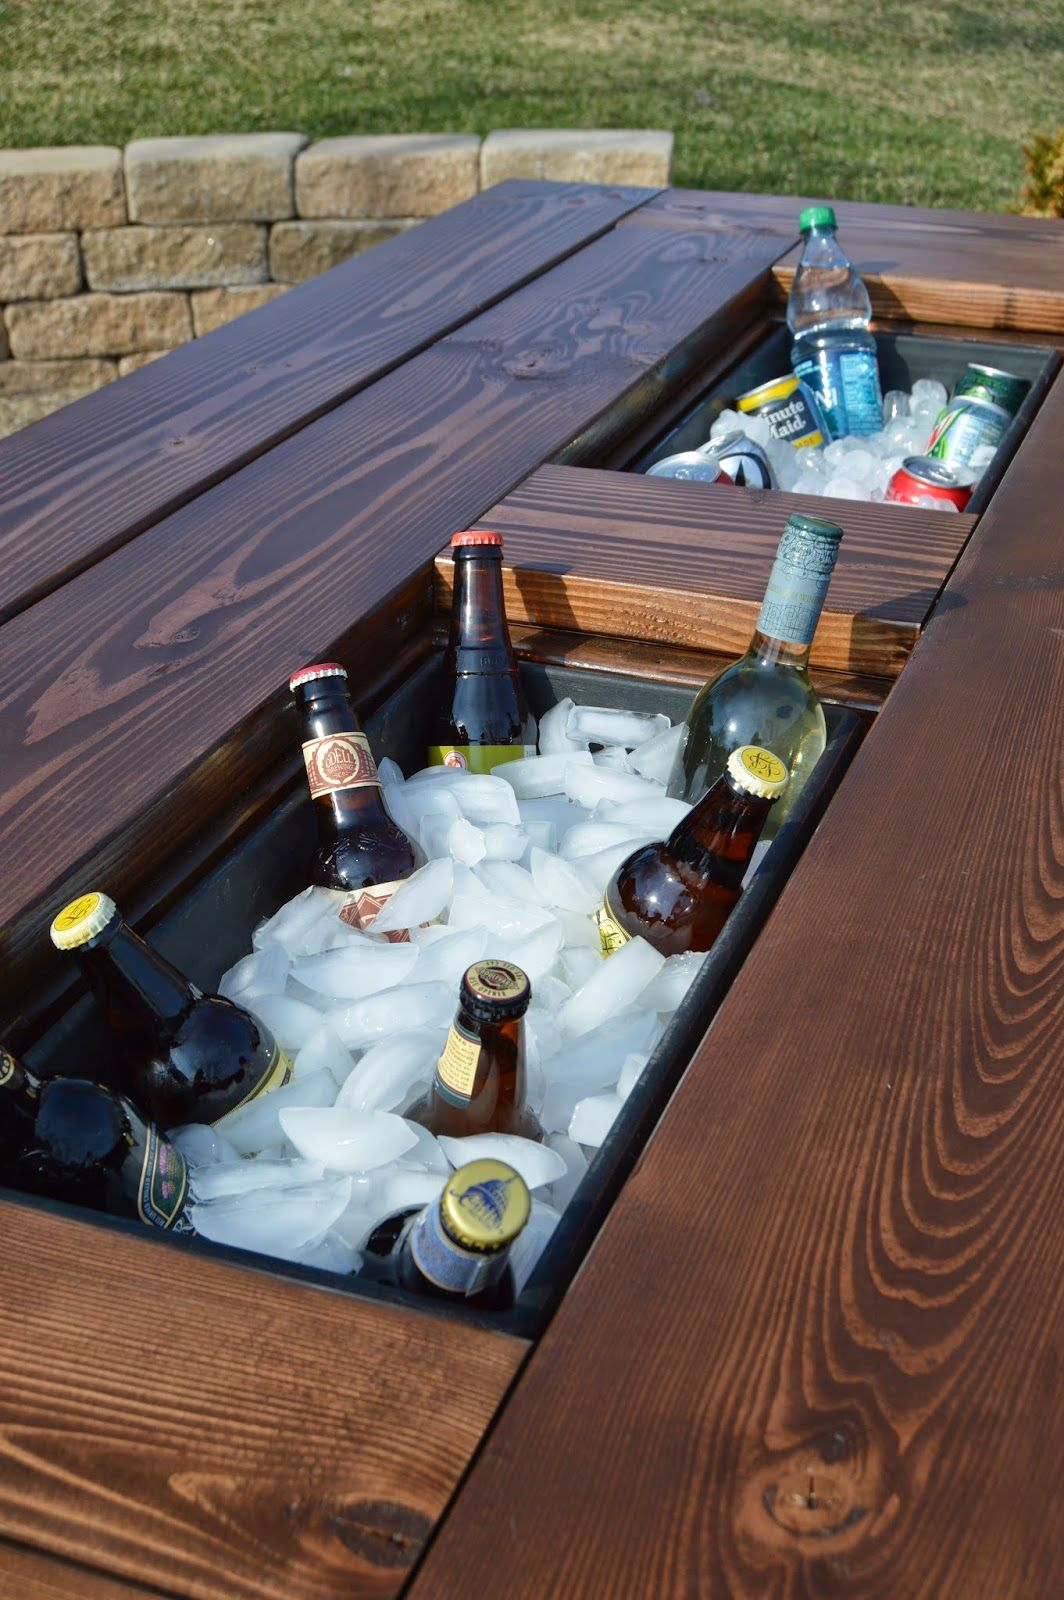 patio table using planter boxes for built in drink coolers kruse s rh pinterest com patio table with built in cooler diy patio table with built in cooler diy